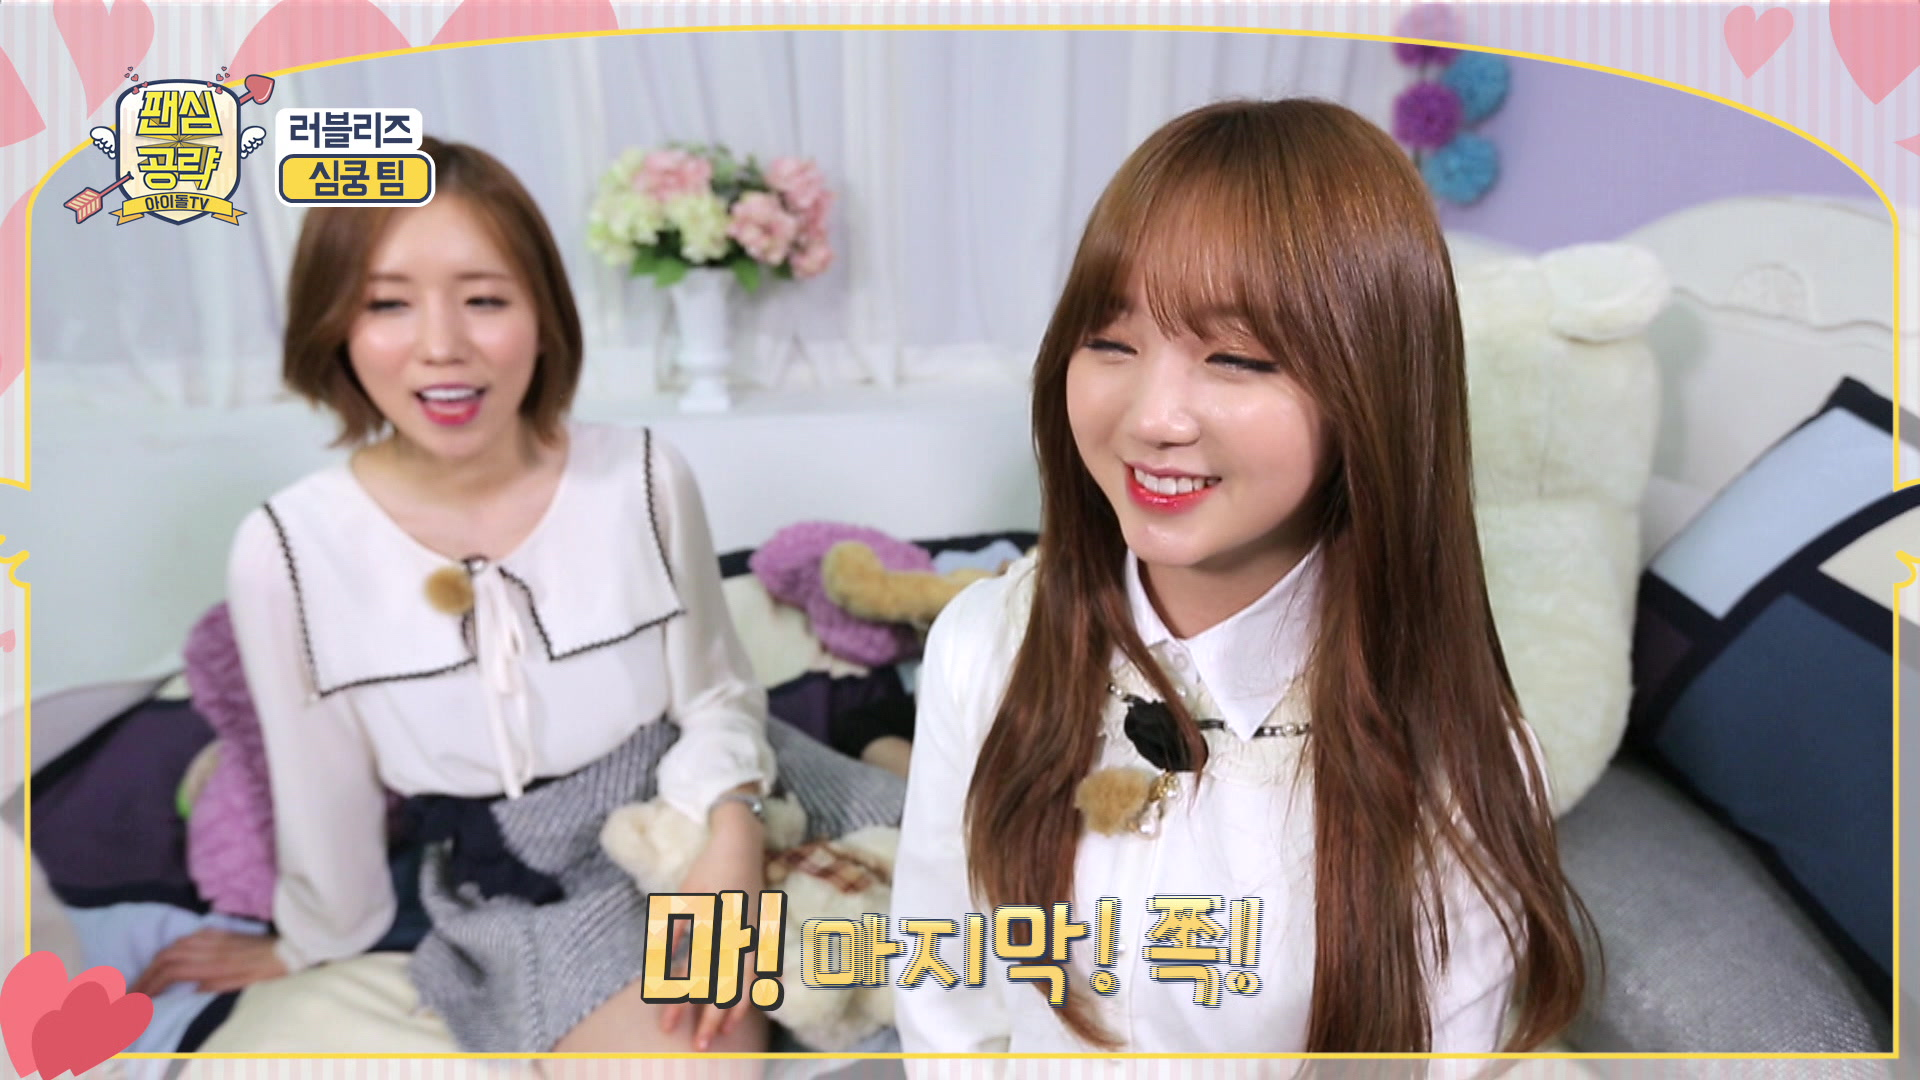 Fan Heart Attack Idol TV Episode 2: Lovelyz